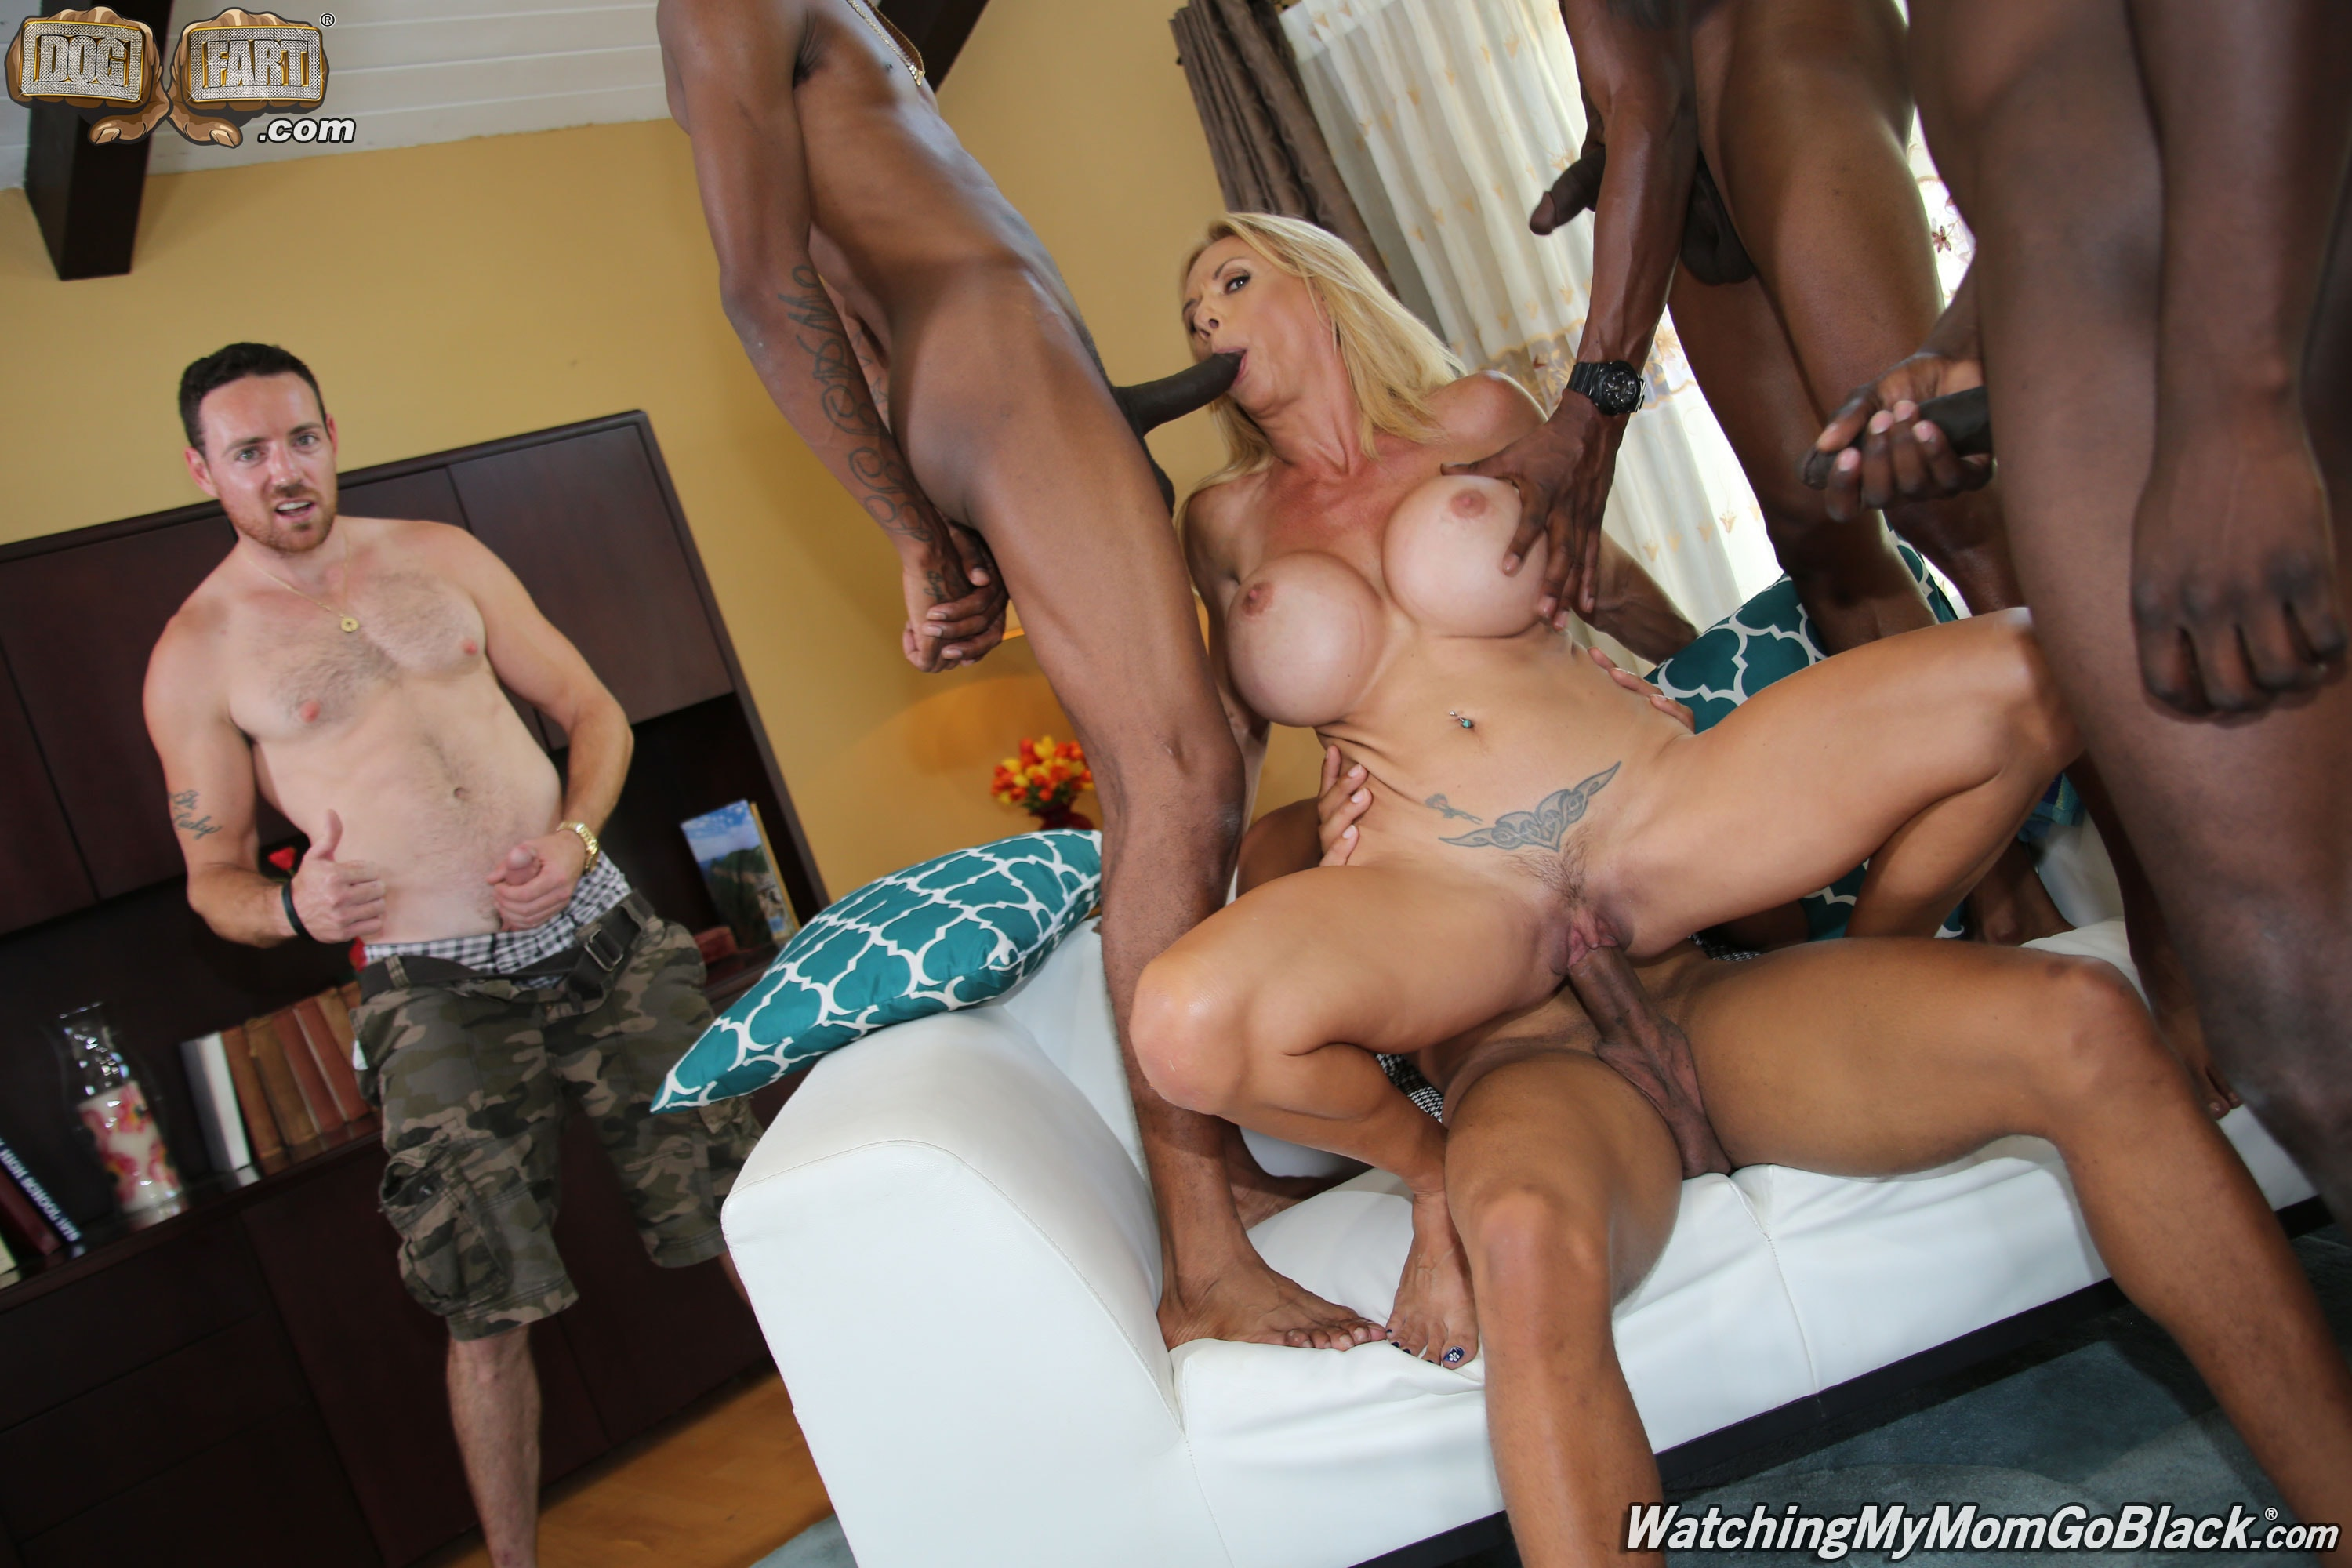 Only a bbc can satisfy a wife this deeply 3